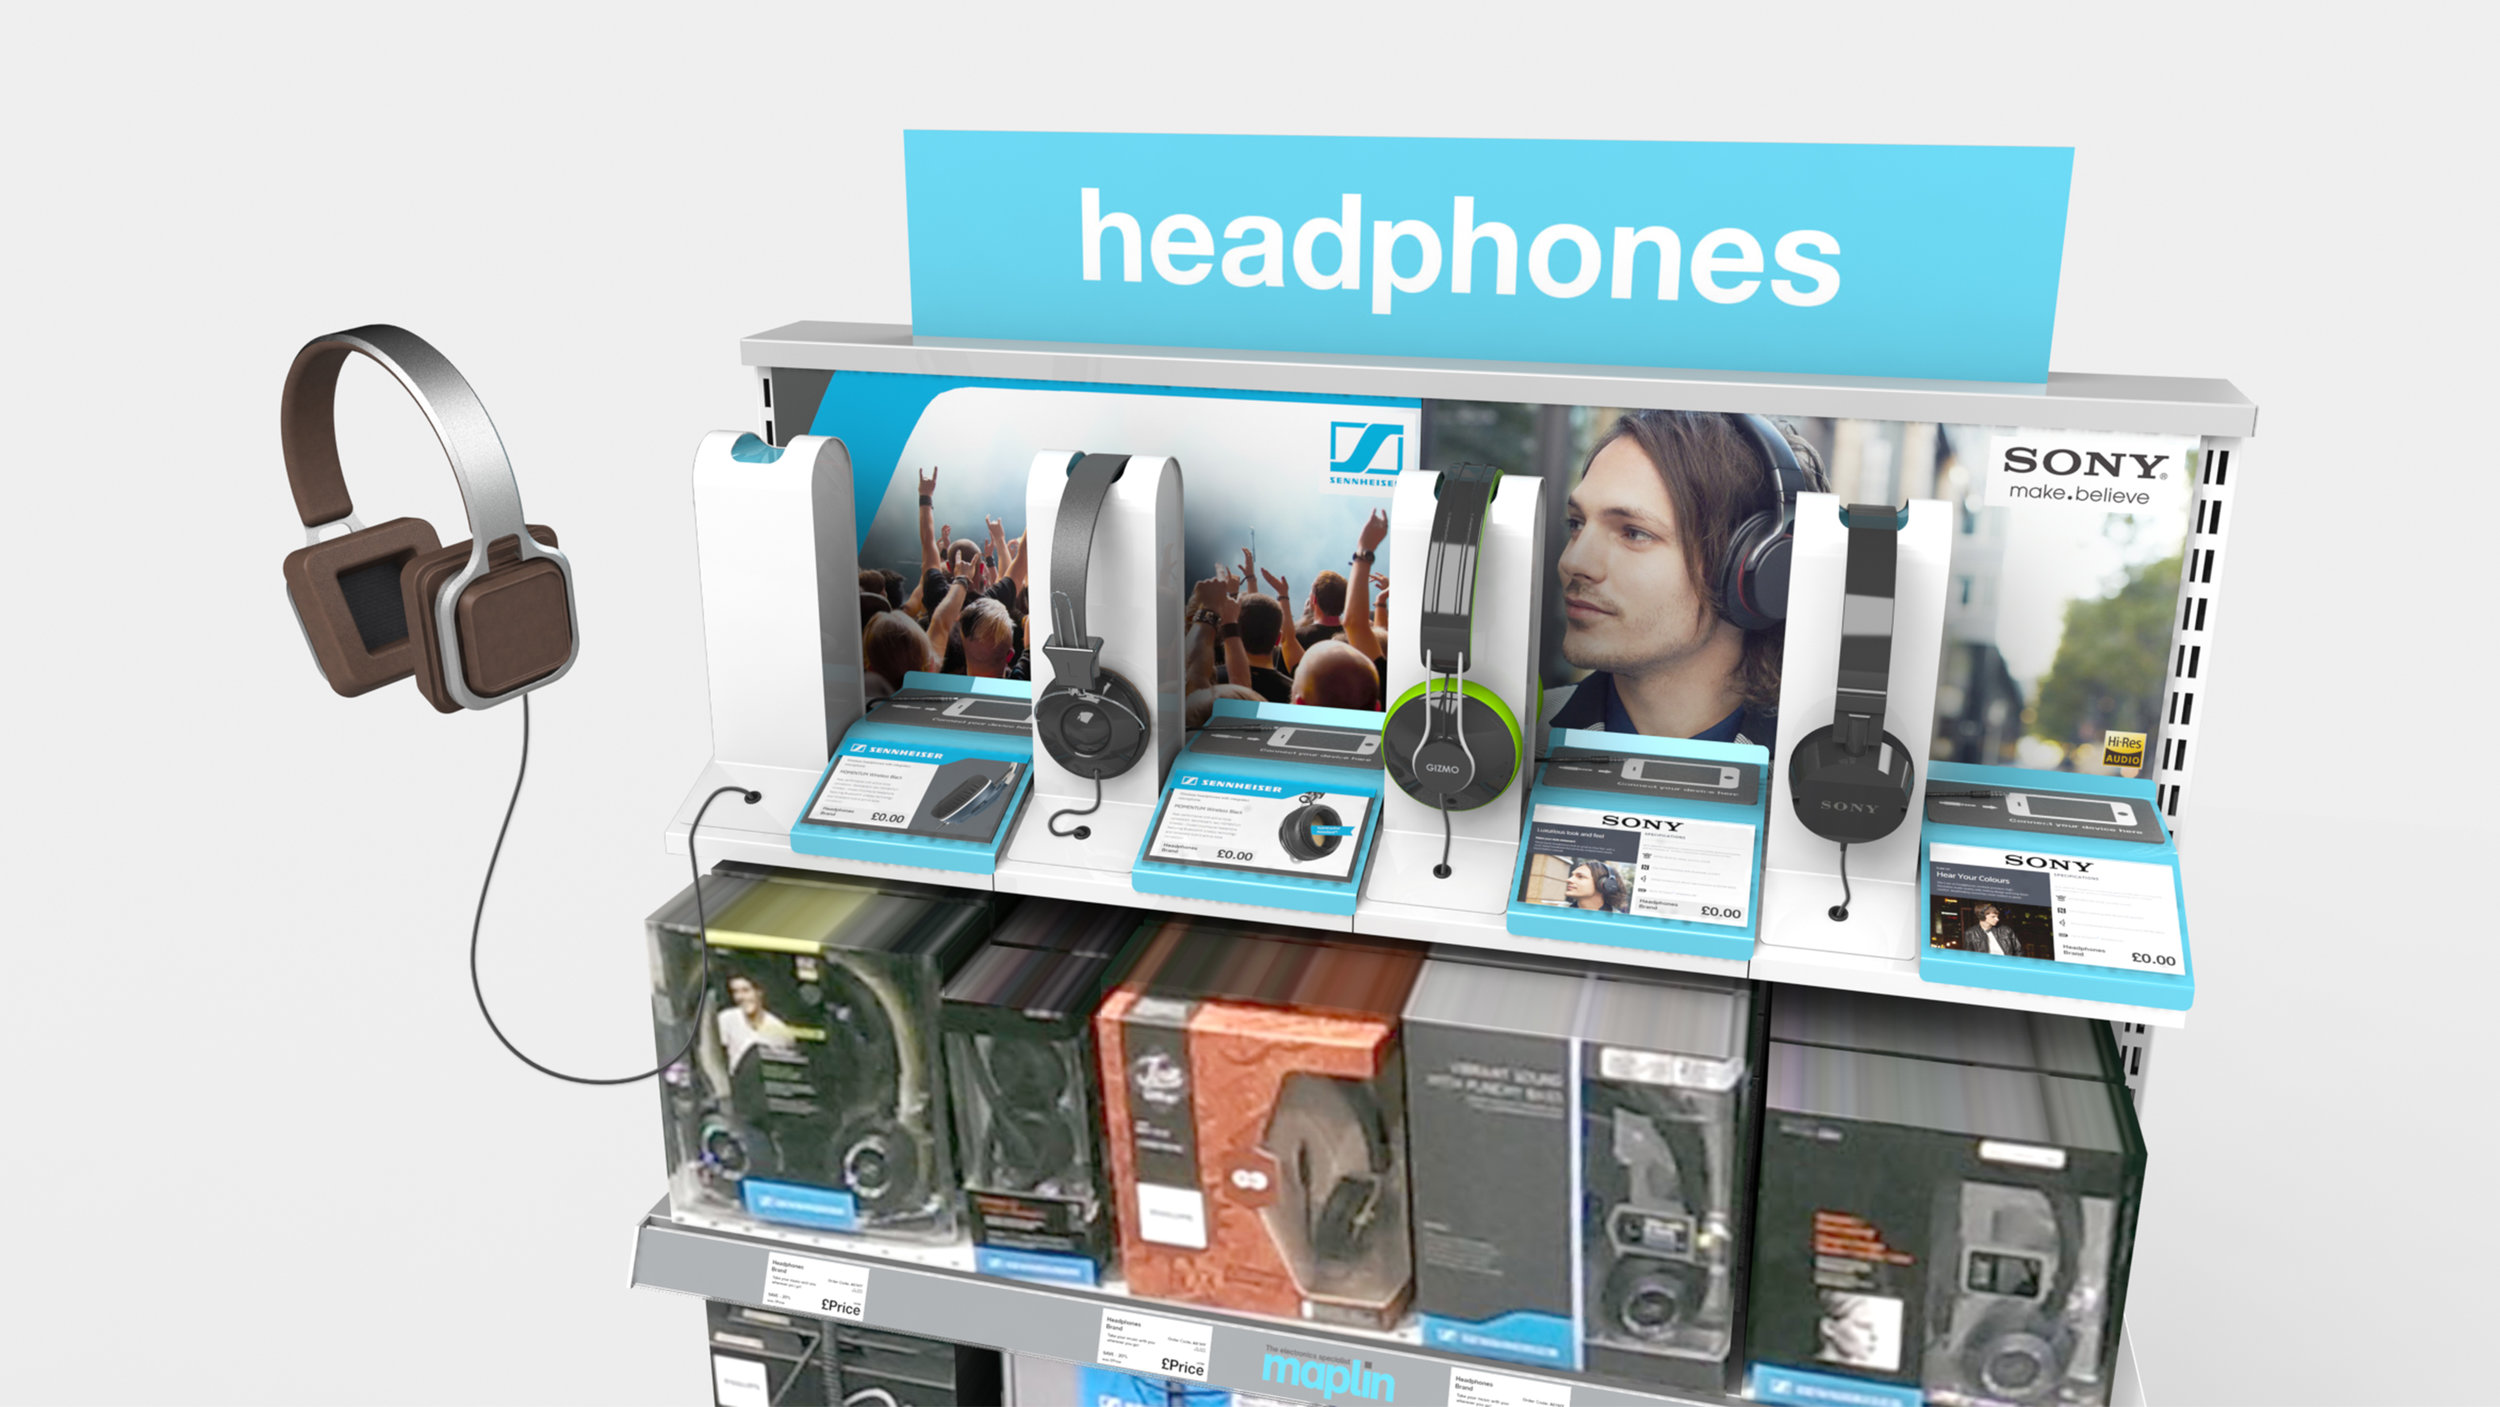 Modular Headphone Display for Maplin Electronics. Prototyped but not manufactured.